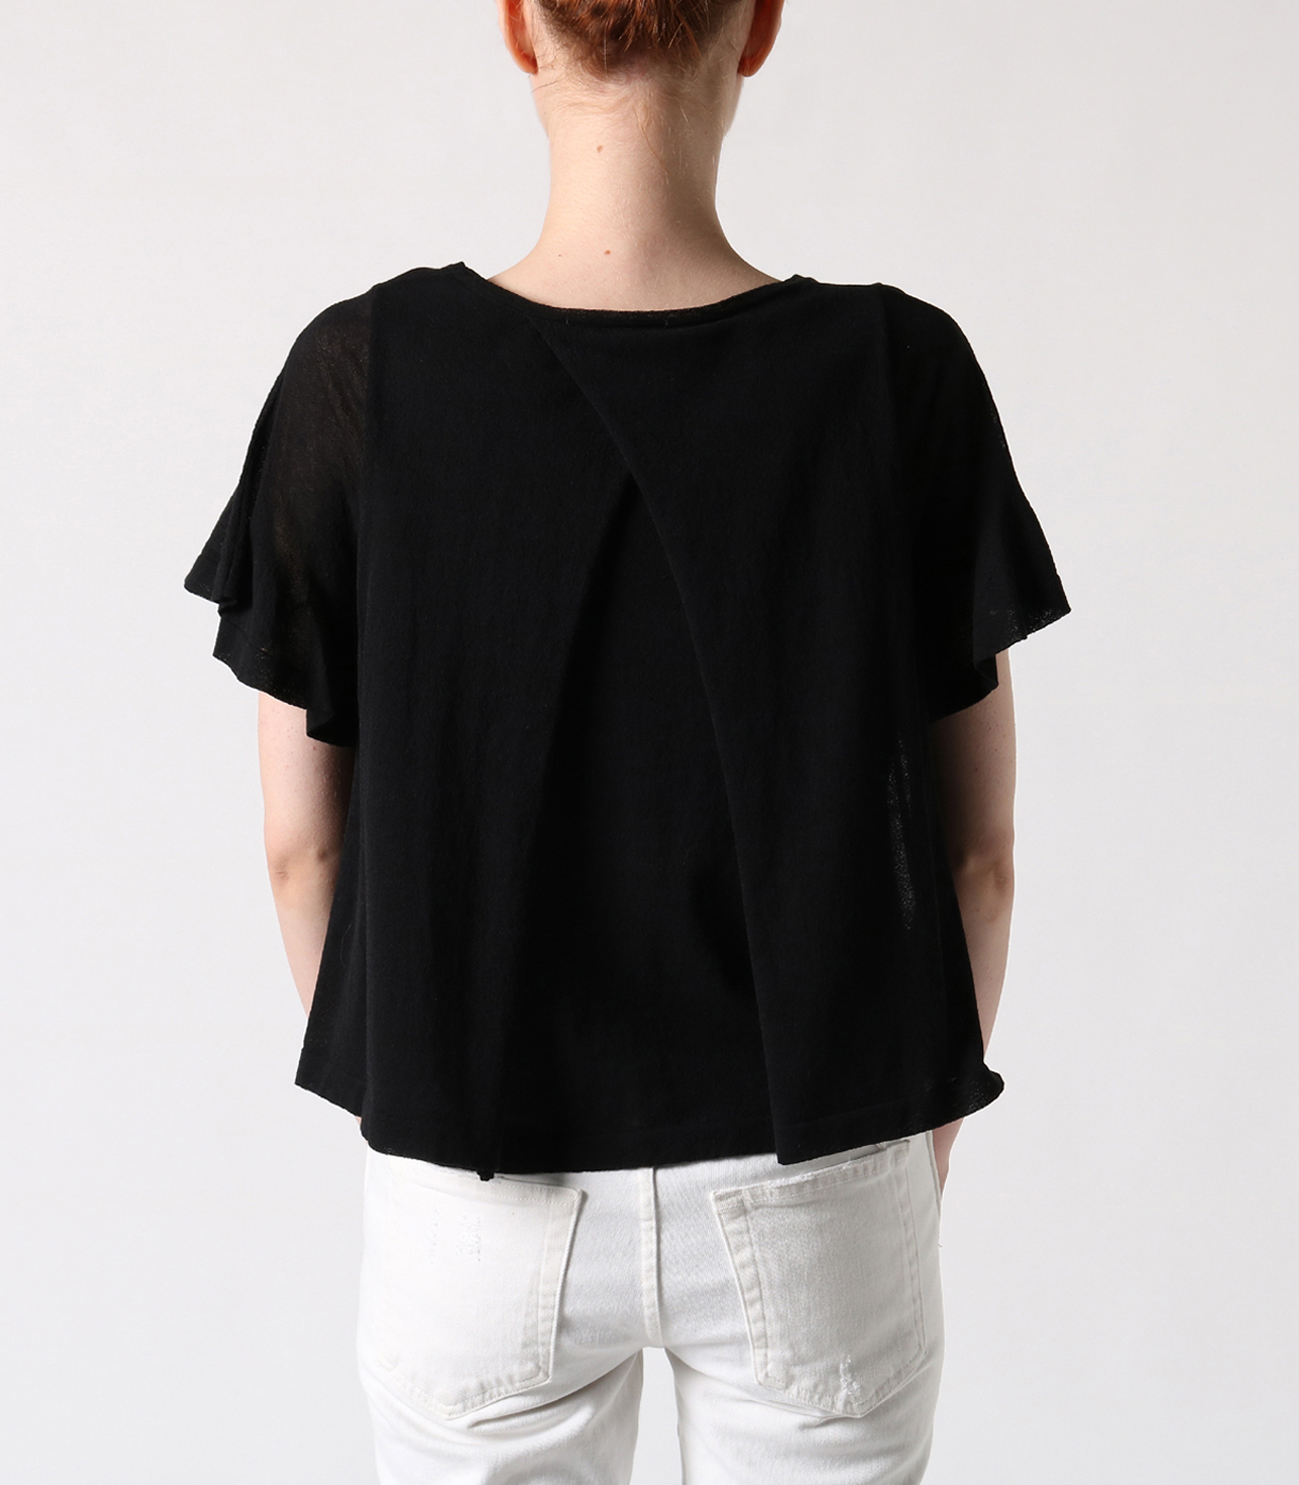 crepe sweater s/s doubled top 詳細画像 black 4